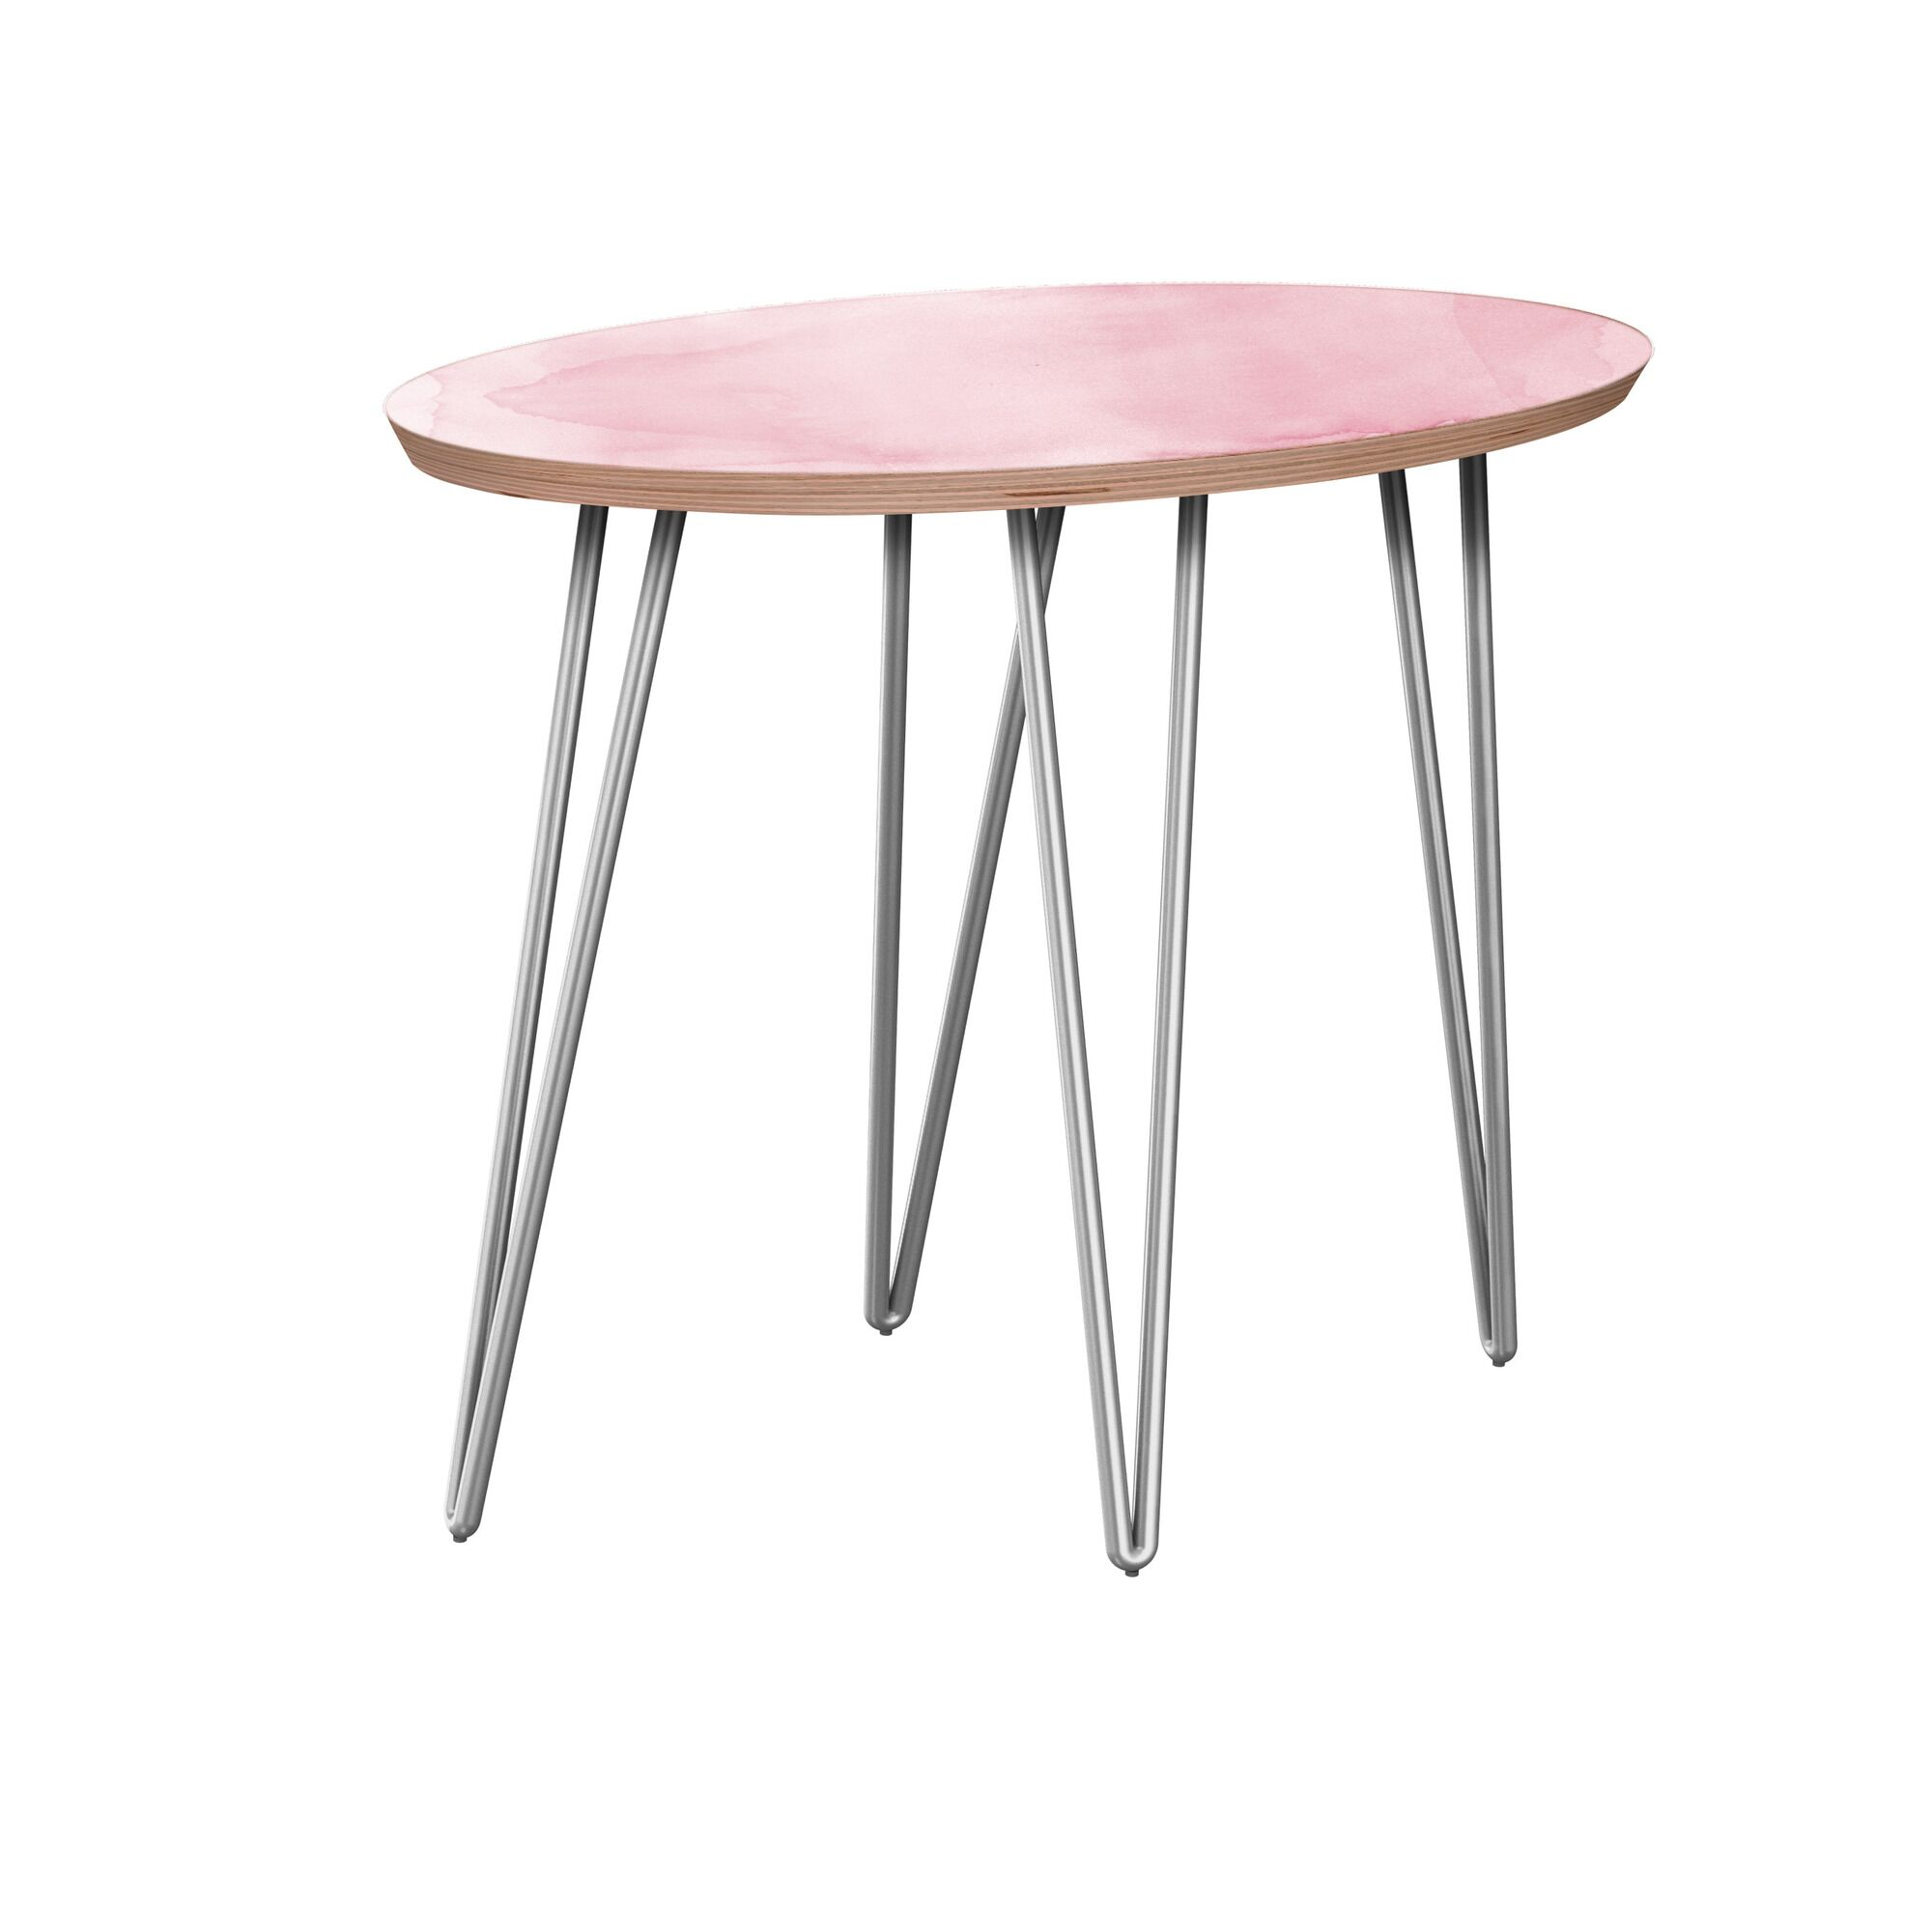 Jarred End Table Table Base Color: Chrome, Table Top Boarder Color: Walnut, Table Top Color: Gray/Black